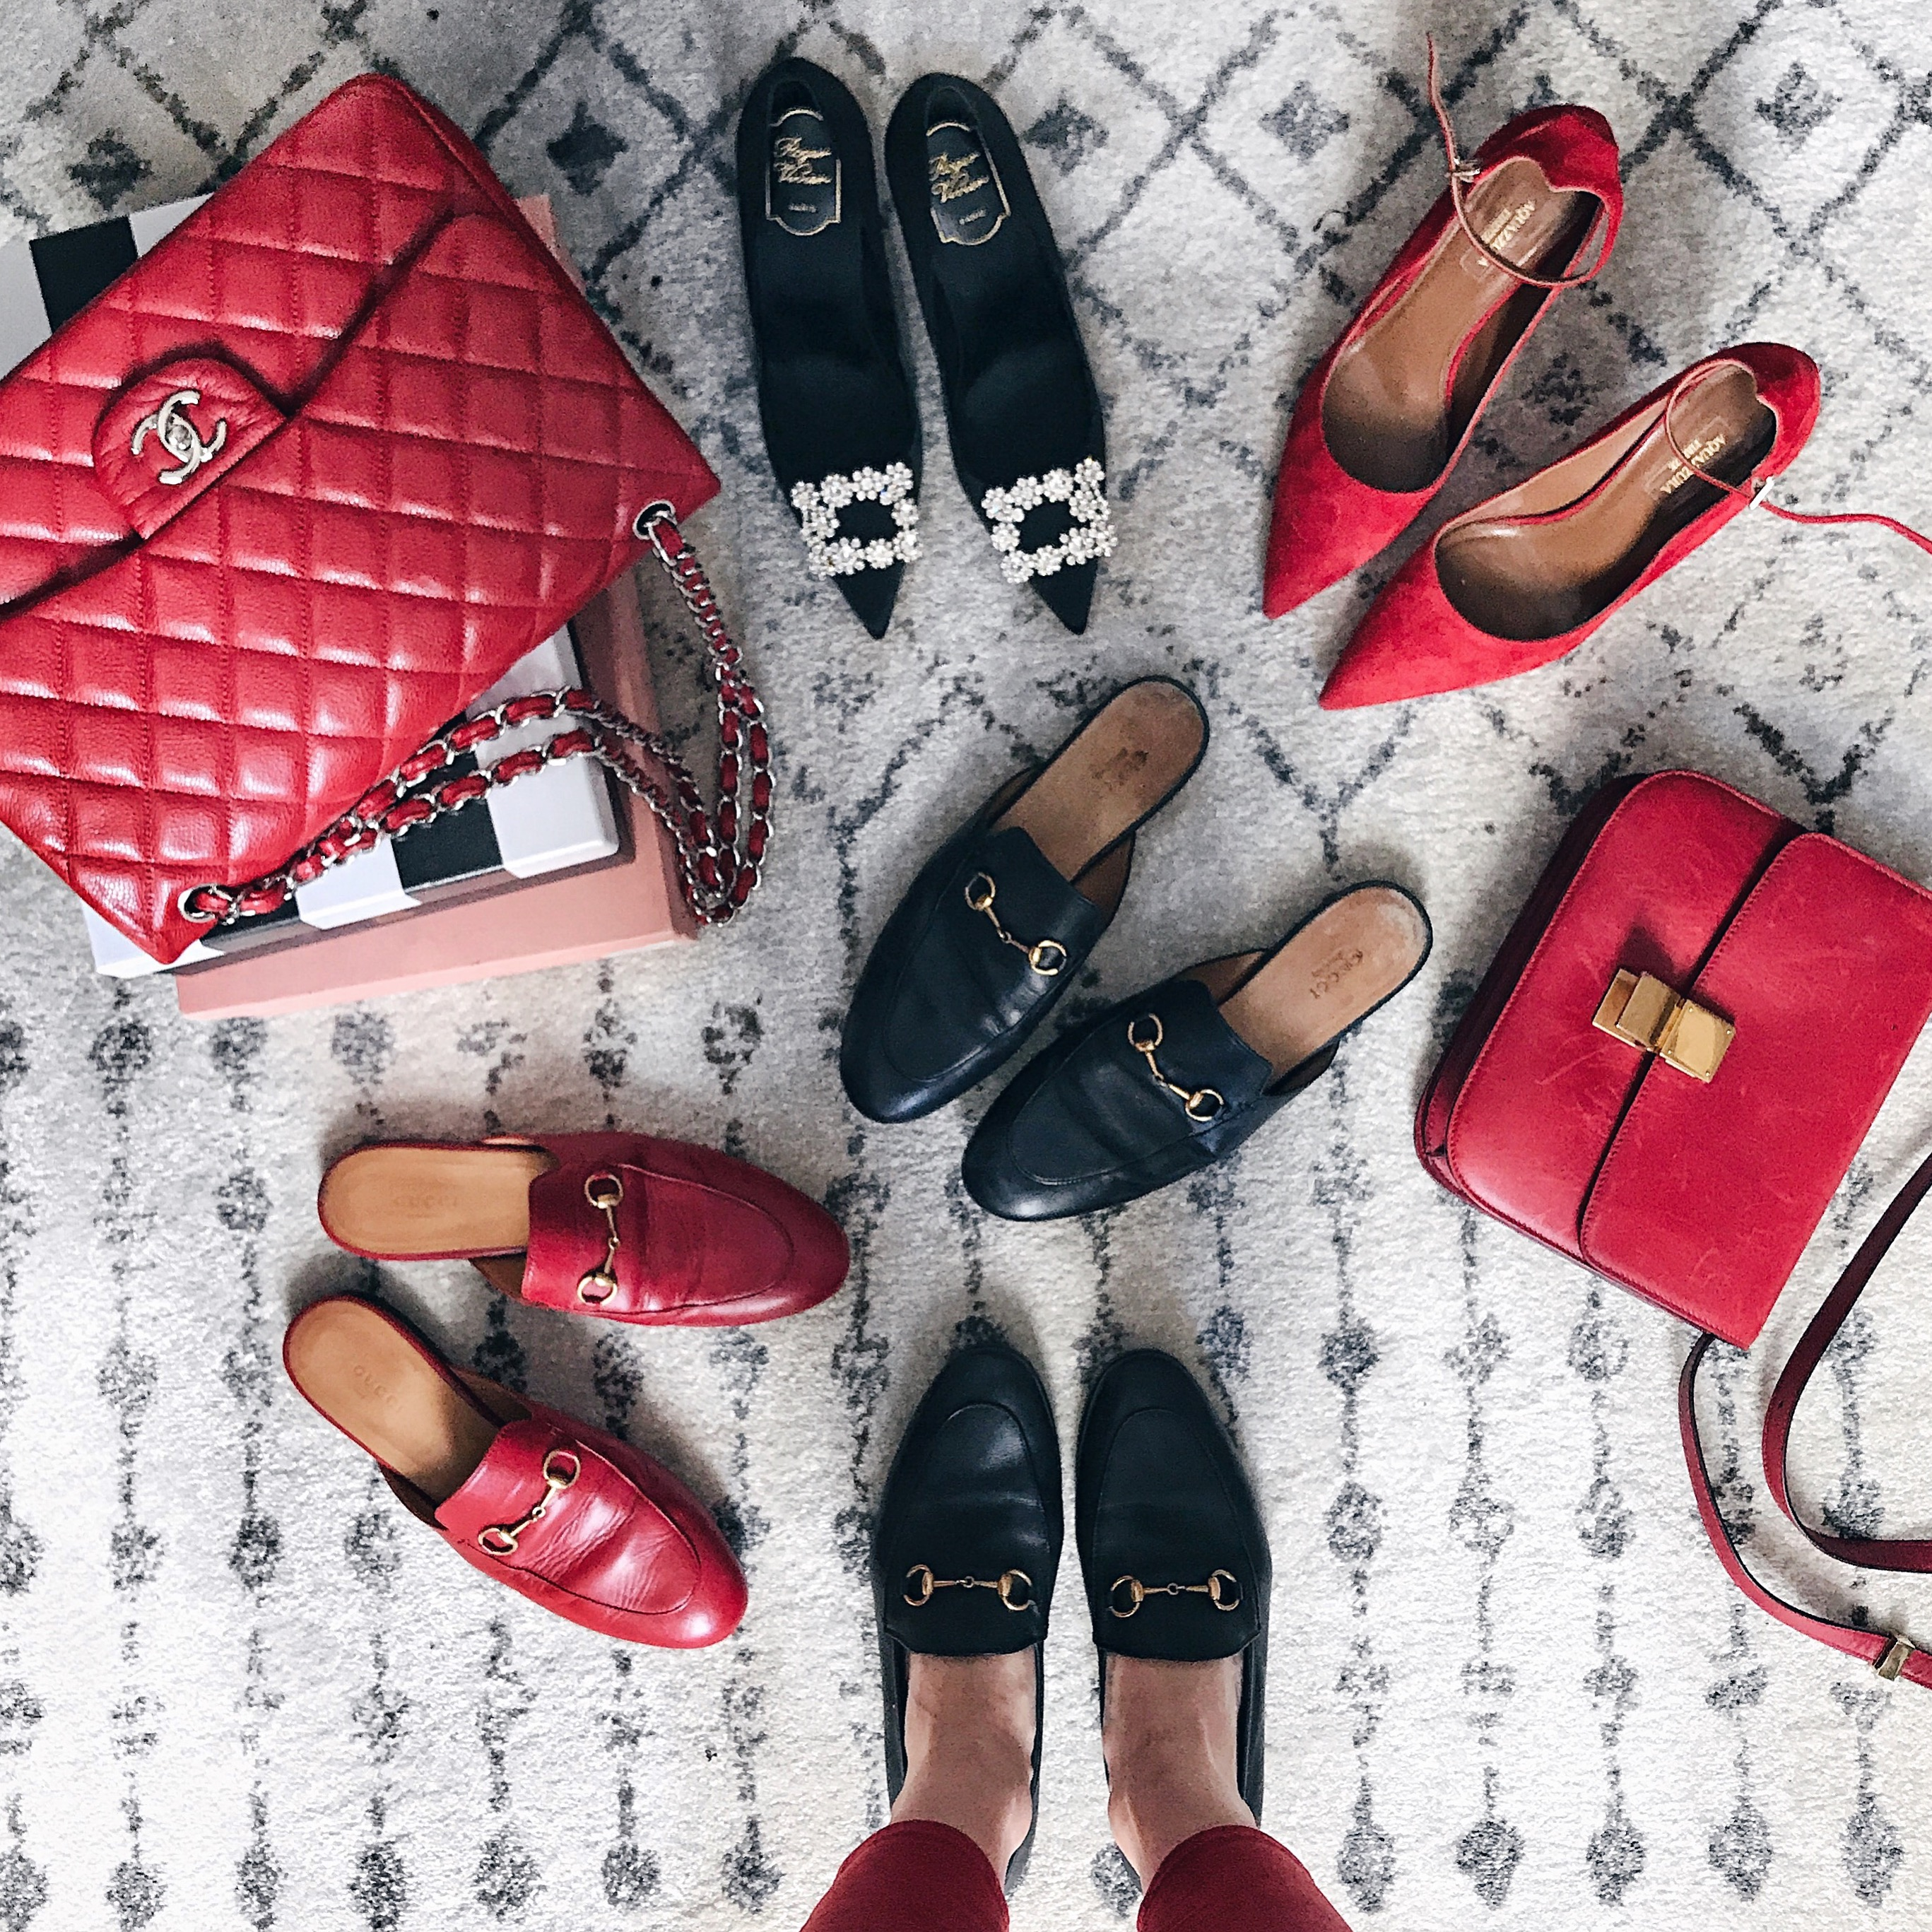 Gucci Princetown Loafers, Aquazzura Flats, Red and Black Details, Helena of Brooklyn Blonde